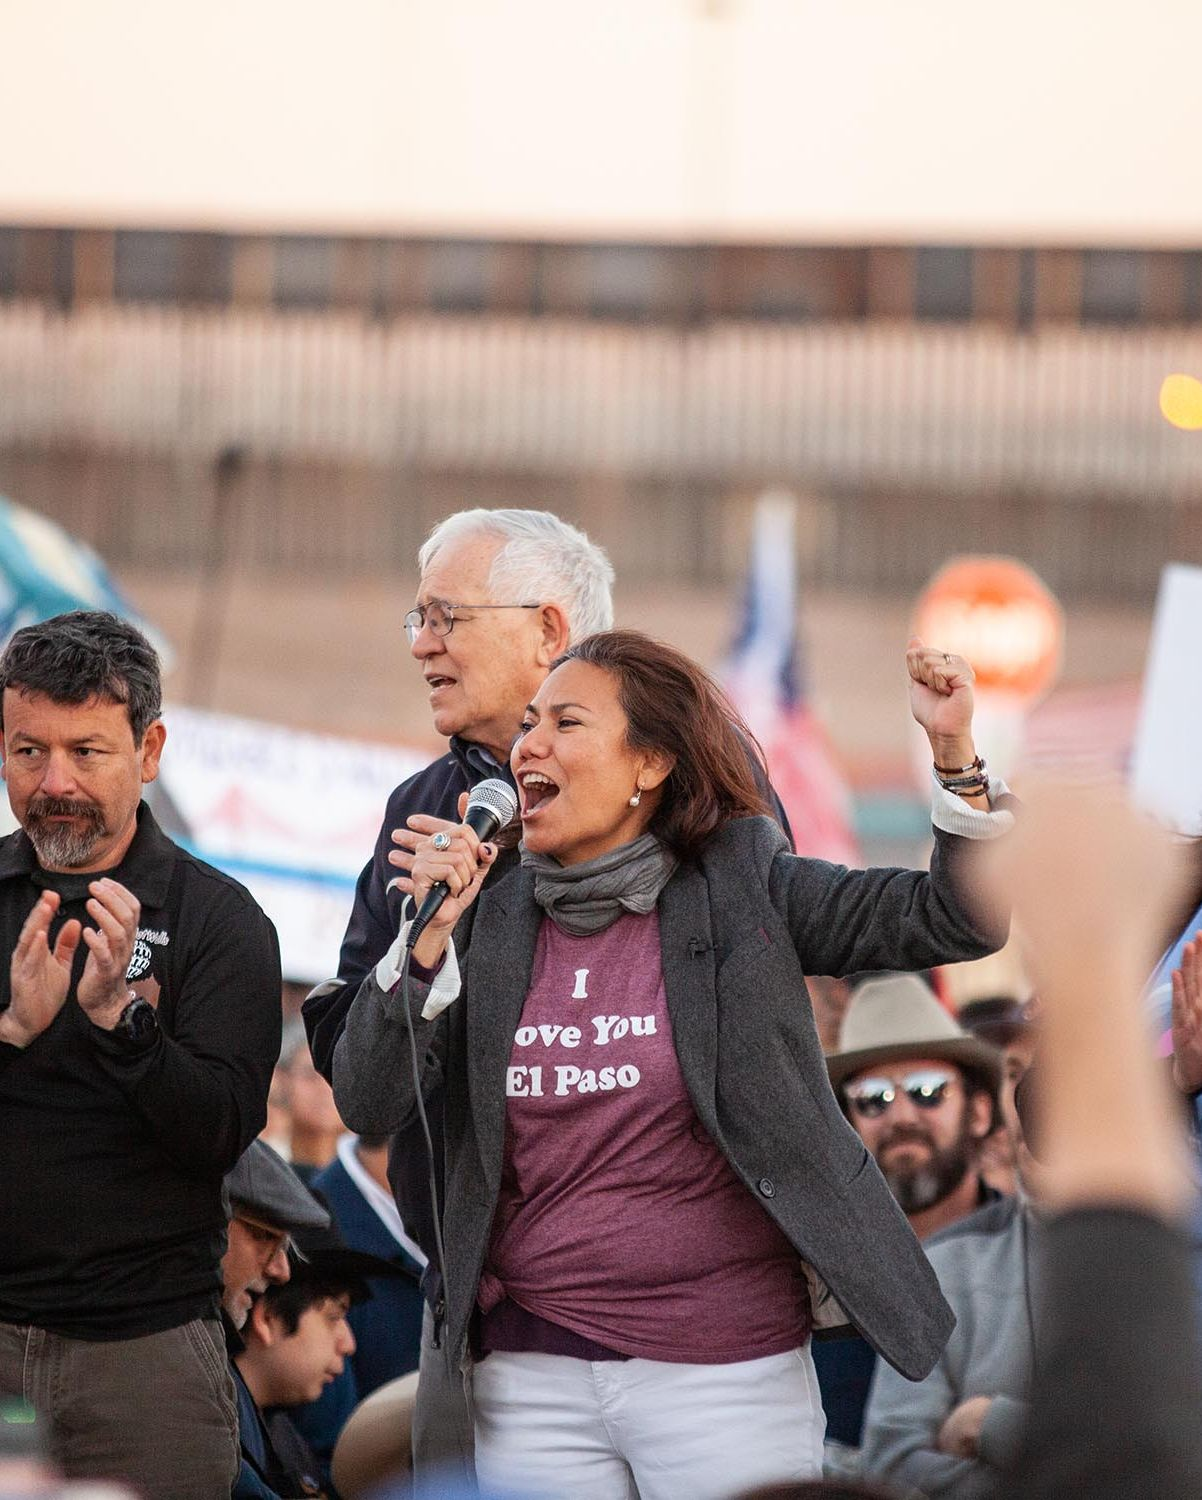 U.S. Rep. Veronica Escobar (D-TX) speaks during a rally before the March for Truth in protest of President Donald Trump's proposed border wall, February 11, 2019 in El Paso, Texas.